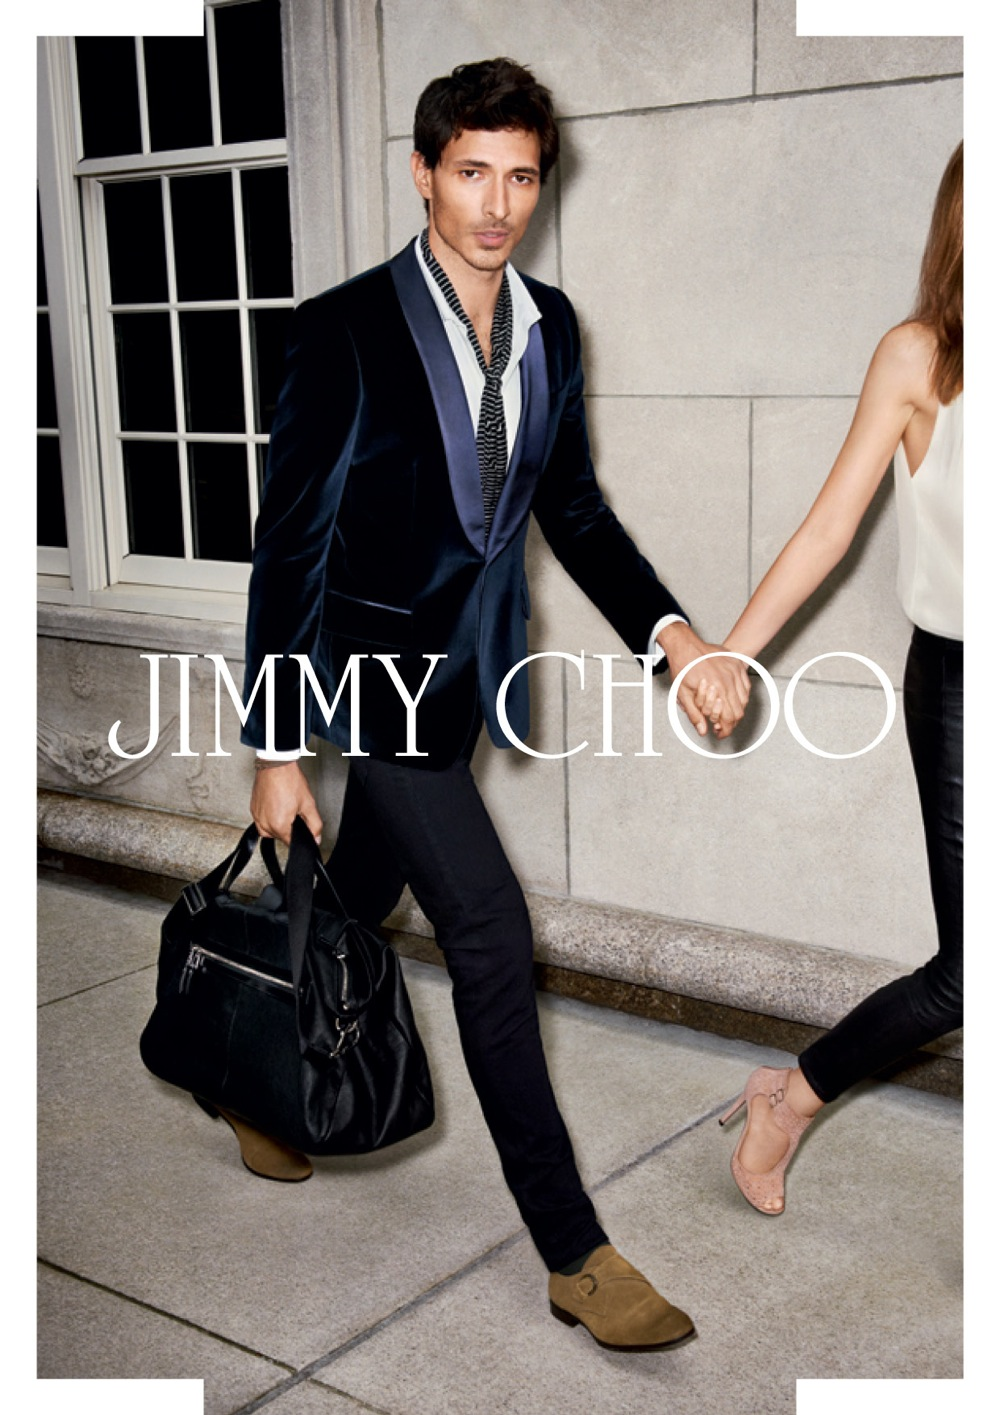 Jimmy Choo Spring 2013 Ad Campaign 3